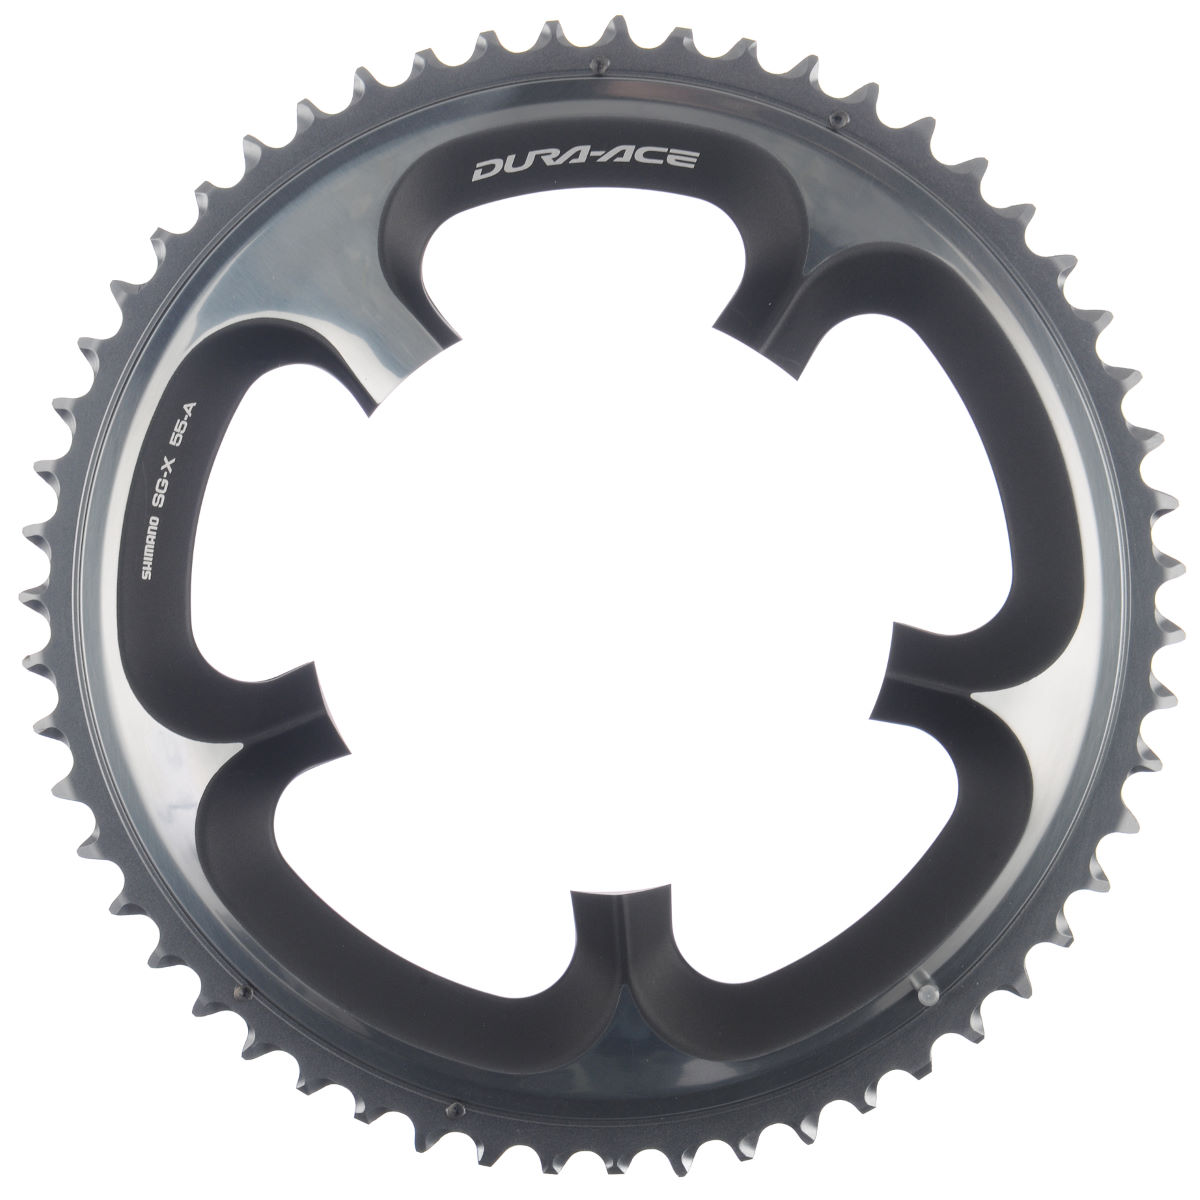 Shimano Dura-ace Fc7900 10sp Double Chainrings - 42t 42t Silver